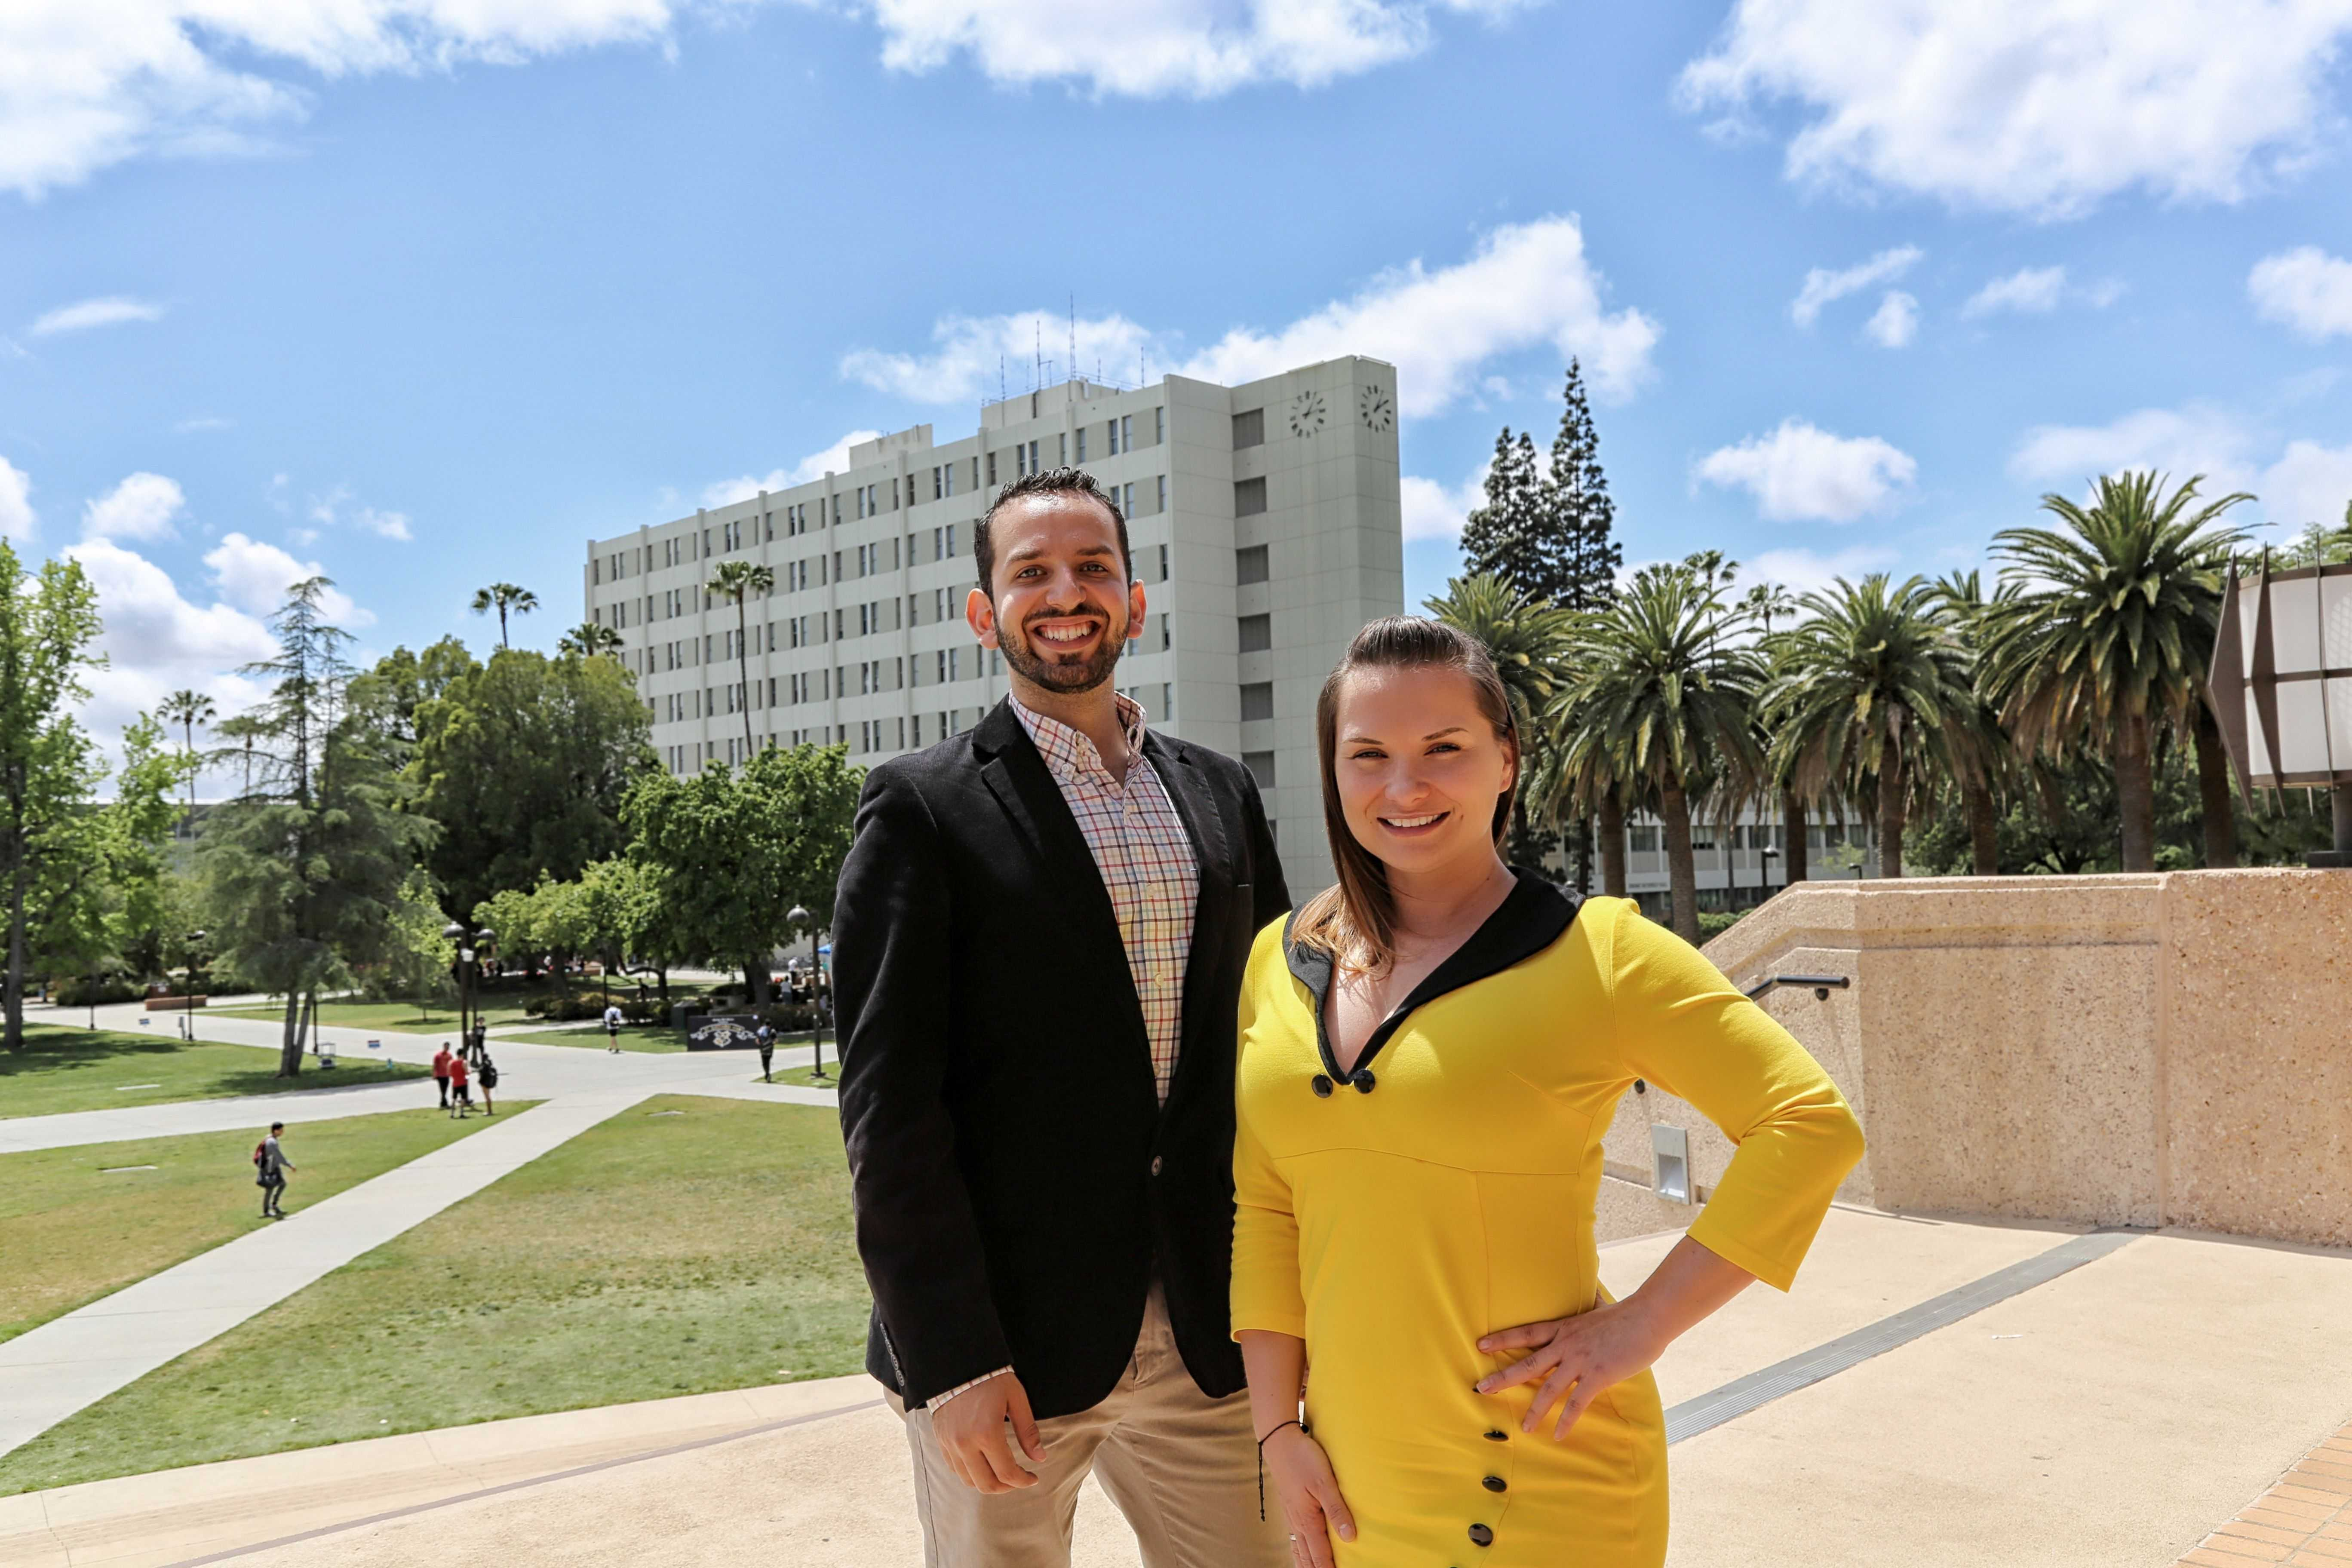 Ute and Alex pose for a photo in front of the Oviatt Library at CSUN Photo credit: Mercedes Mayers